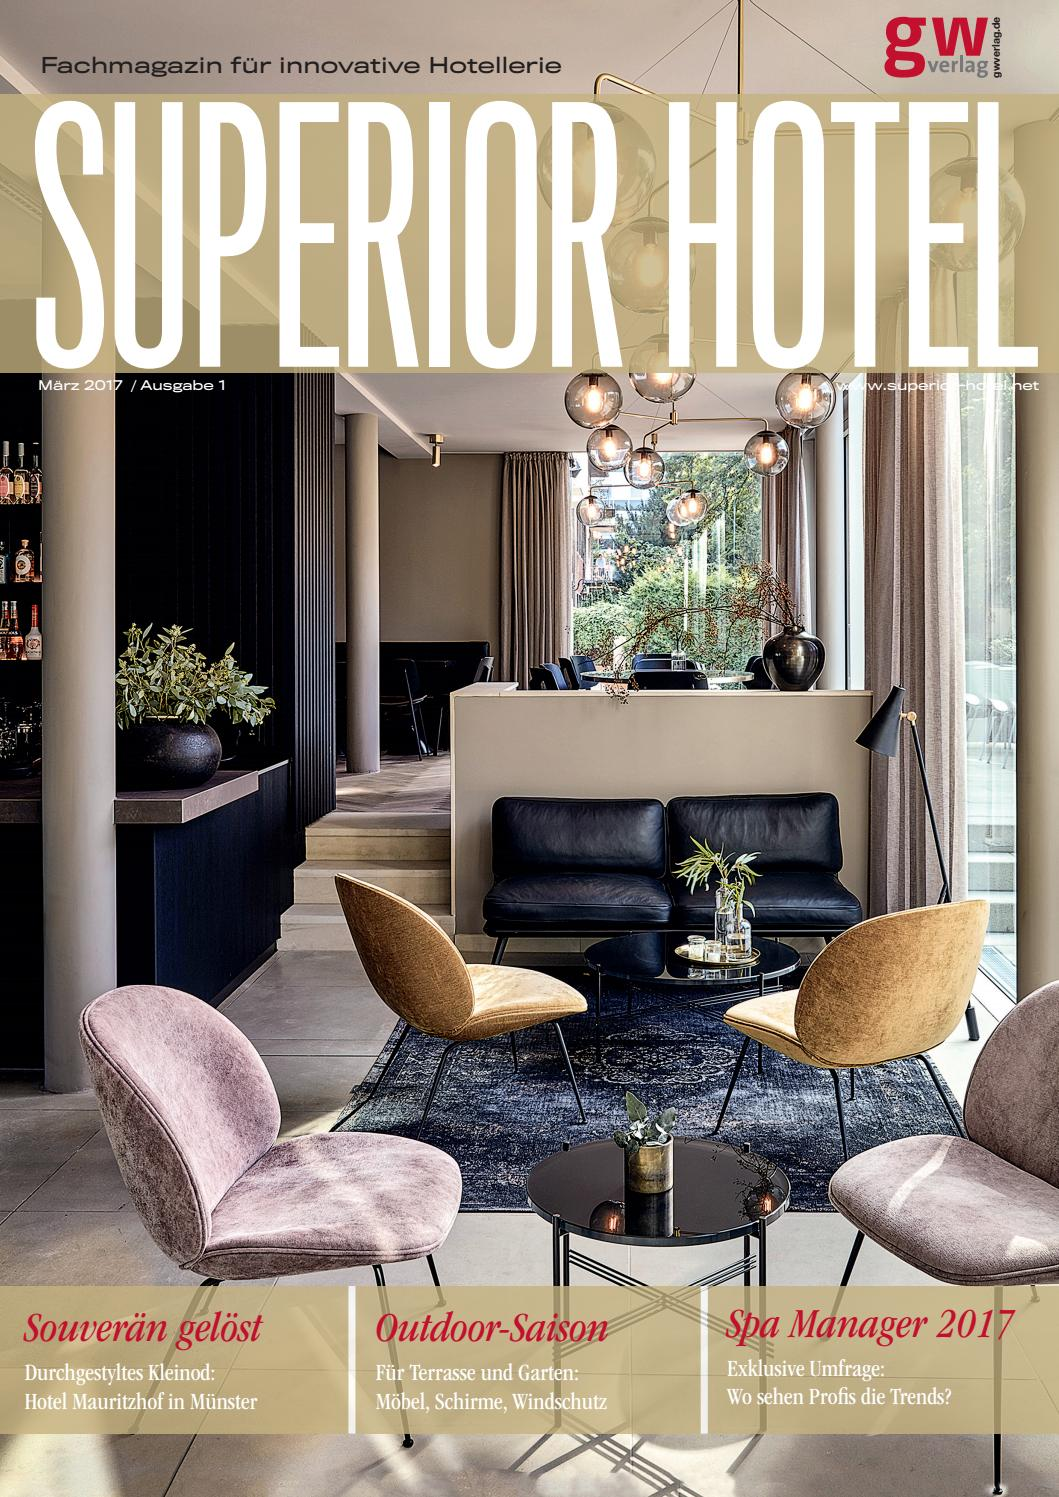 Superior Hotel 1 2017 By Gw Verlag Issuu